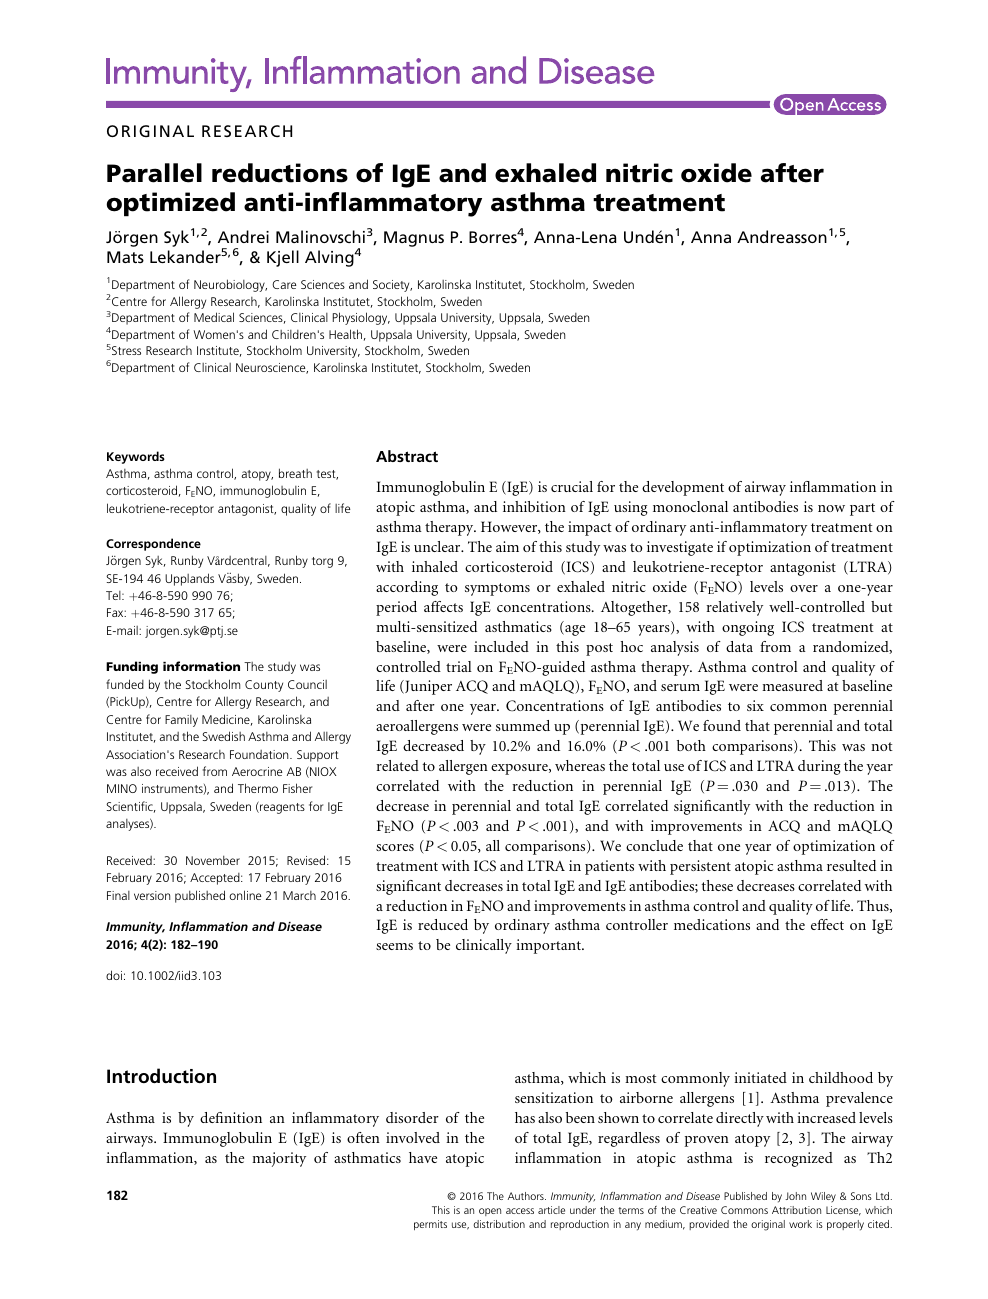 Parallel Reductions Of Ige And Exhaled Nitric Oxide After Optimized Anti Inflammatory Asthma Treatment Topic Of Research Paper In Biological Sciences Download Scholarly Article Pdf And Read For Free On Cyberleninka Open